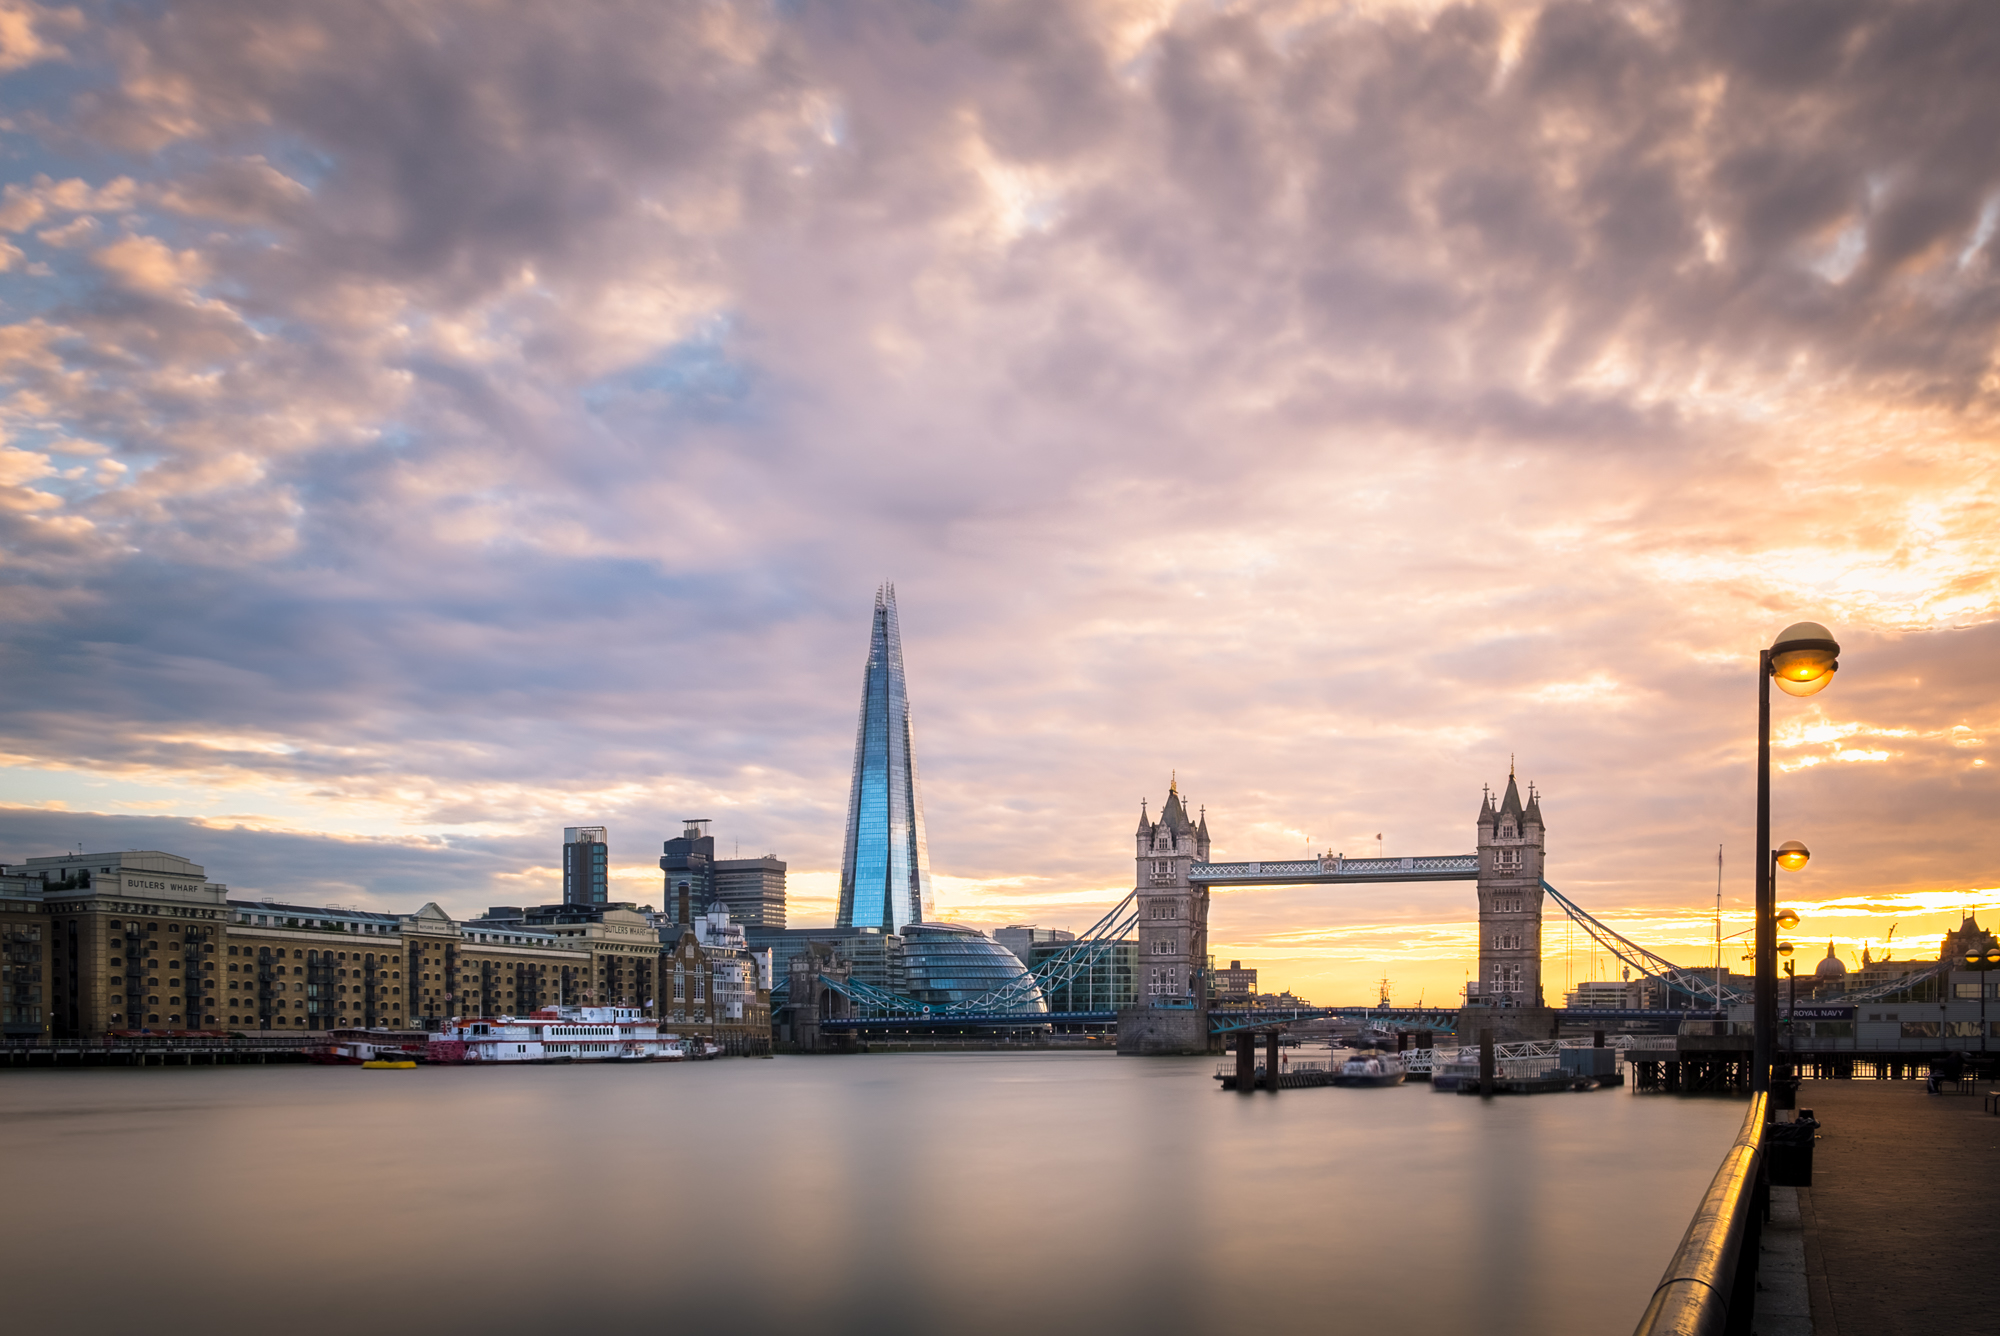 Photo of the Shard and Tower Bridge in London at sunset taken by Trevor Sherwin